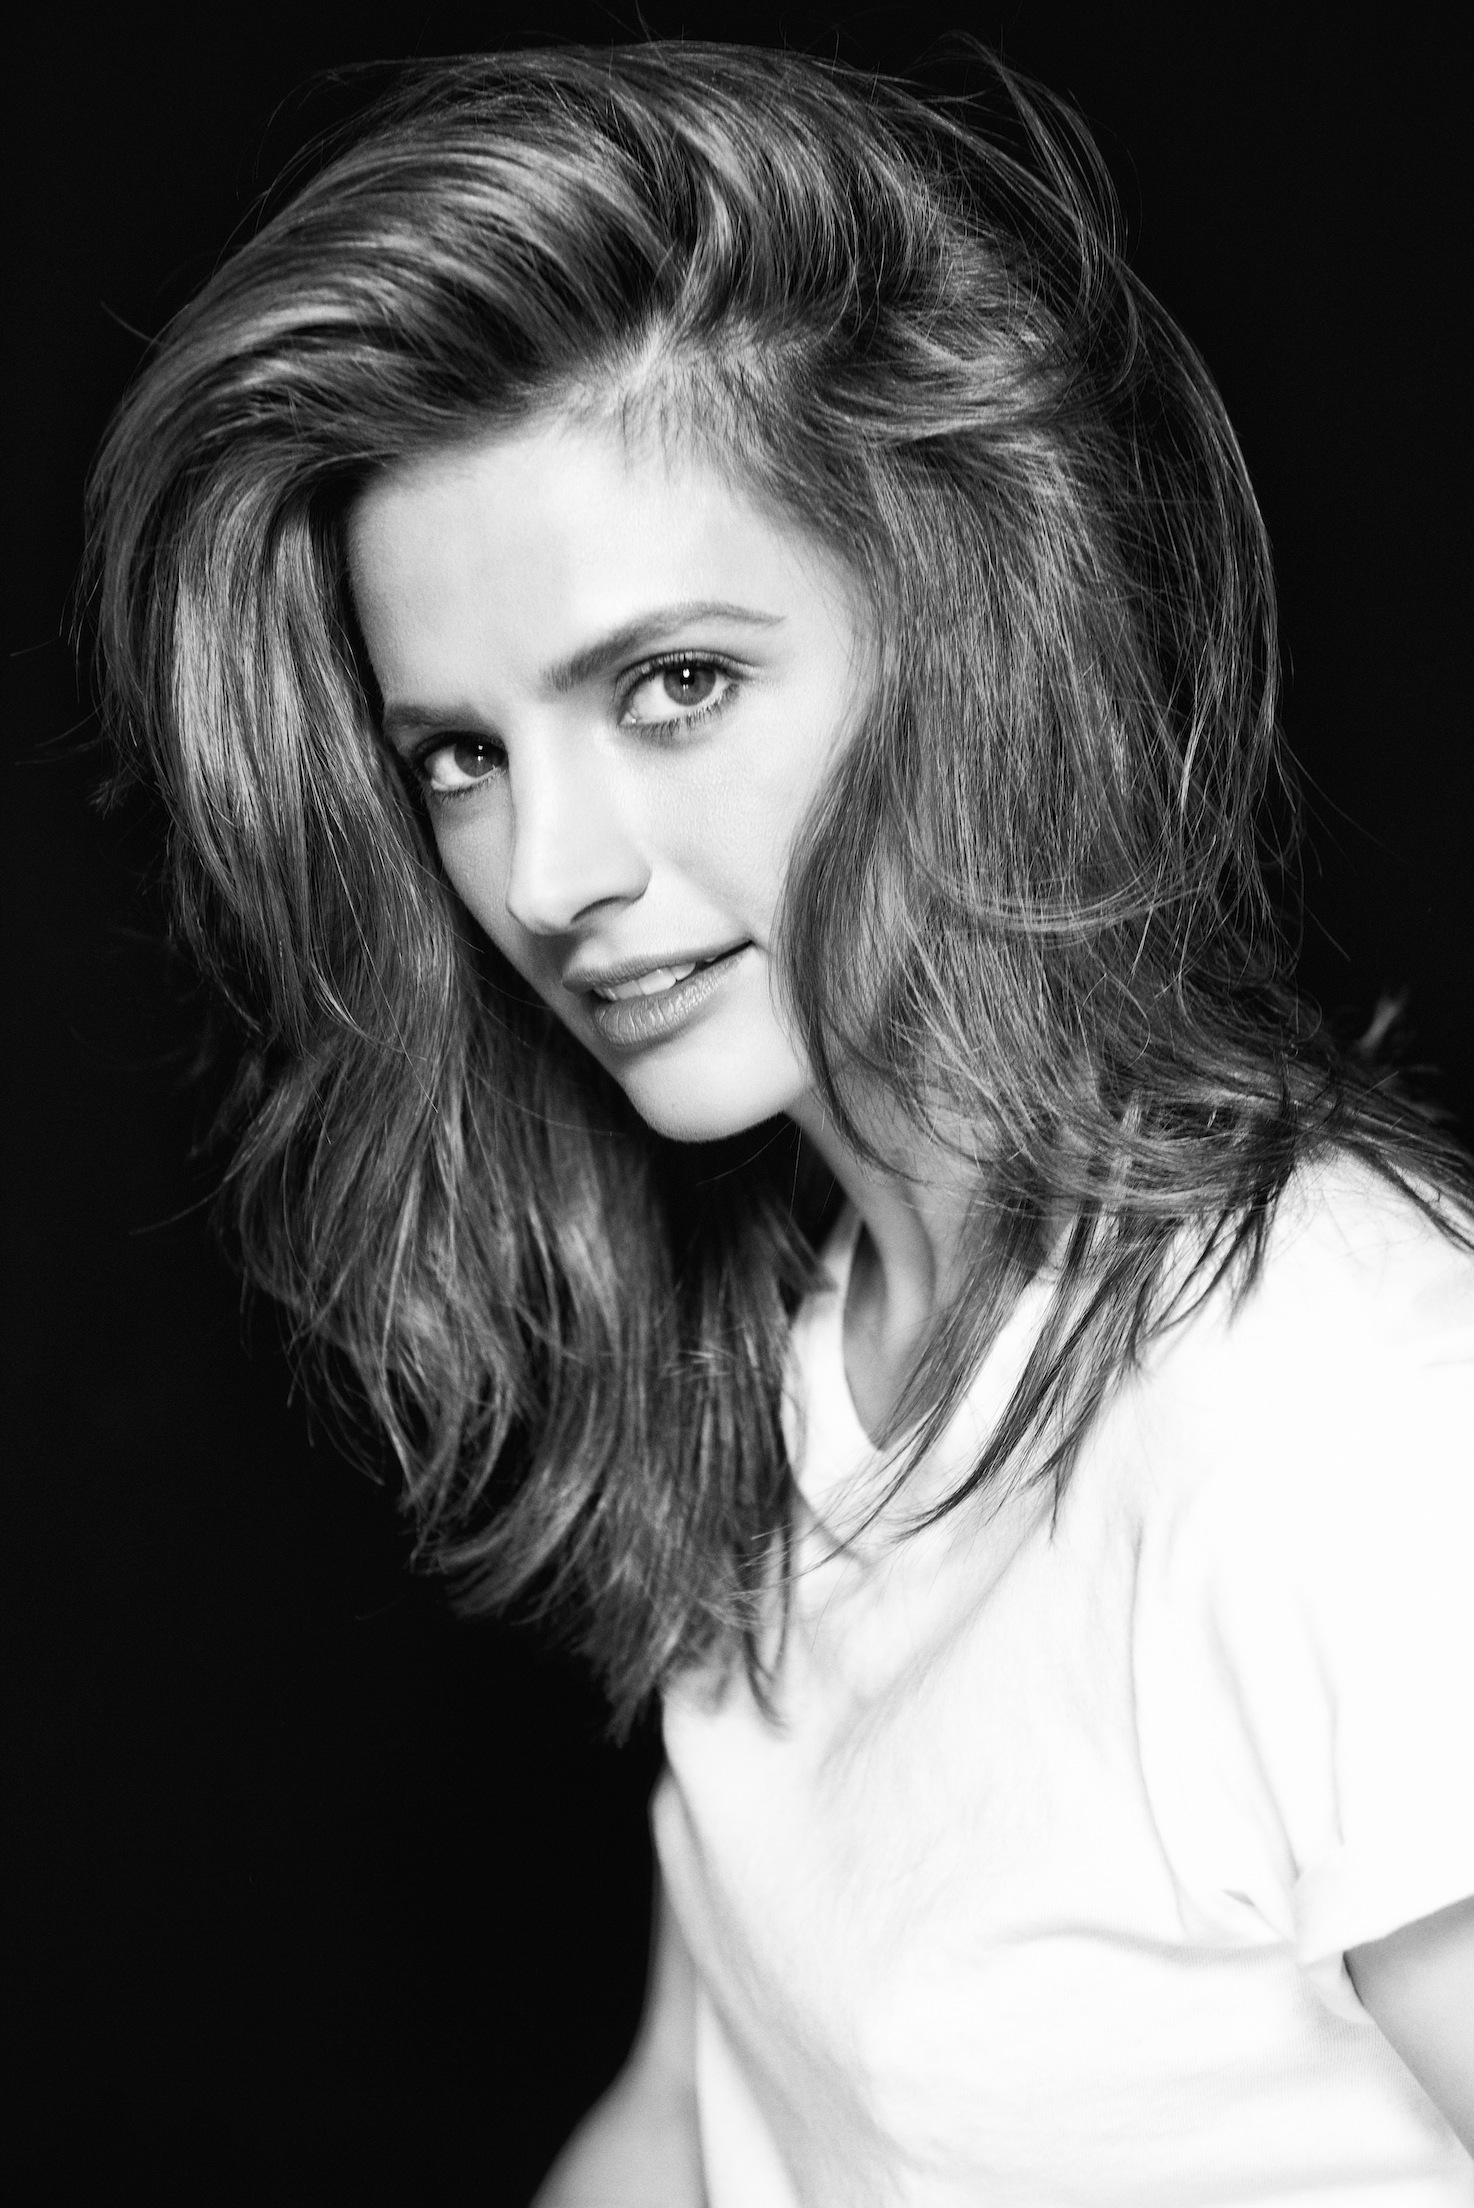 Stana Katic photoshoot